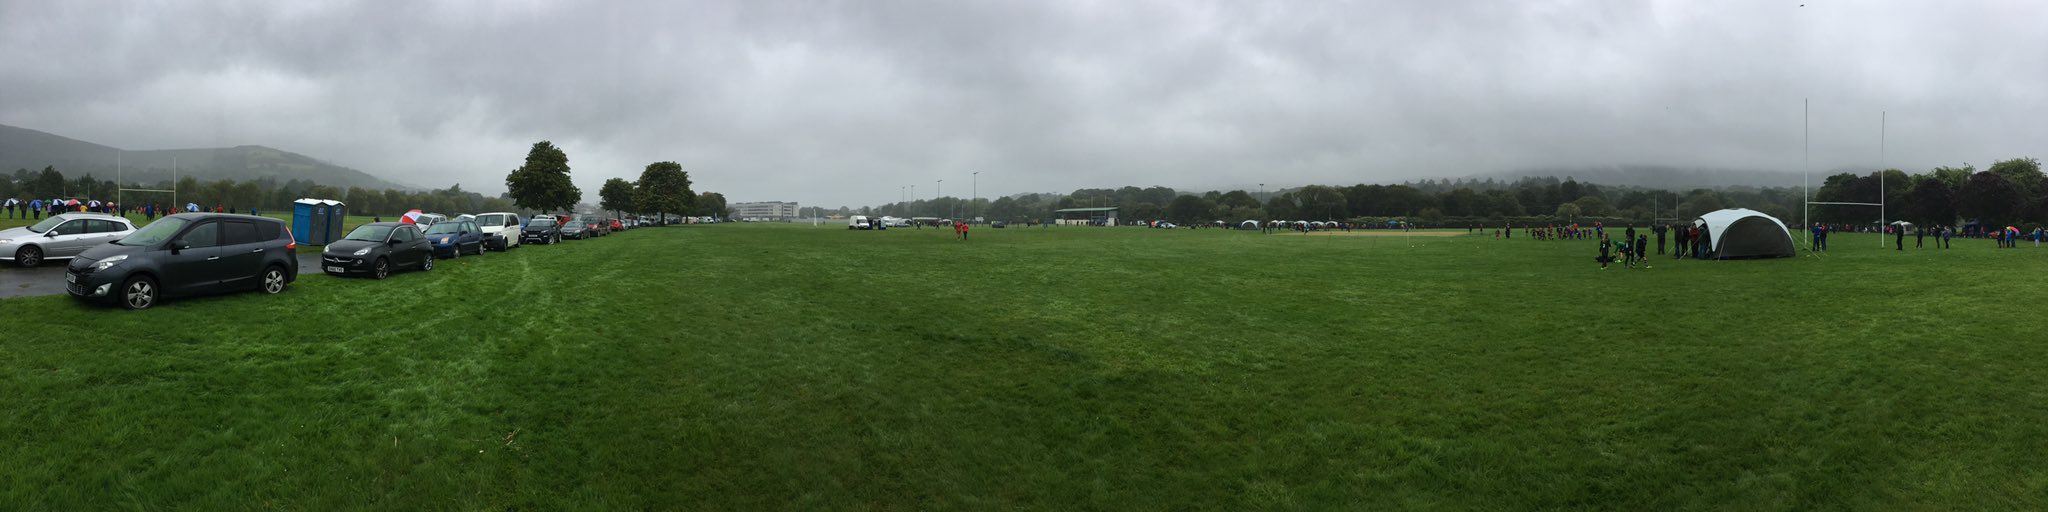 """The rain is not spoiling this tournament. Great rugby played by all ages. @WRU_Community"""